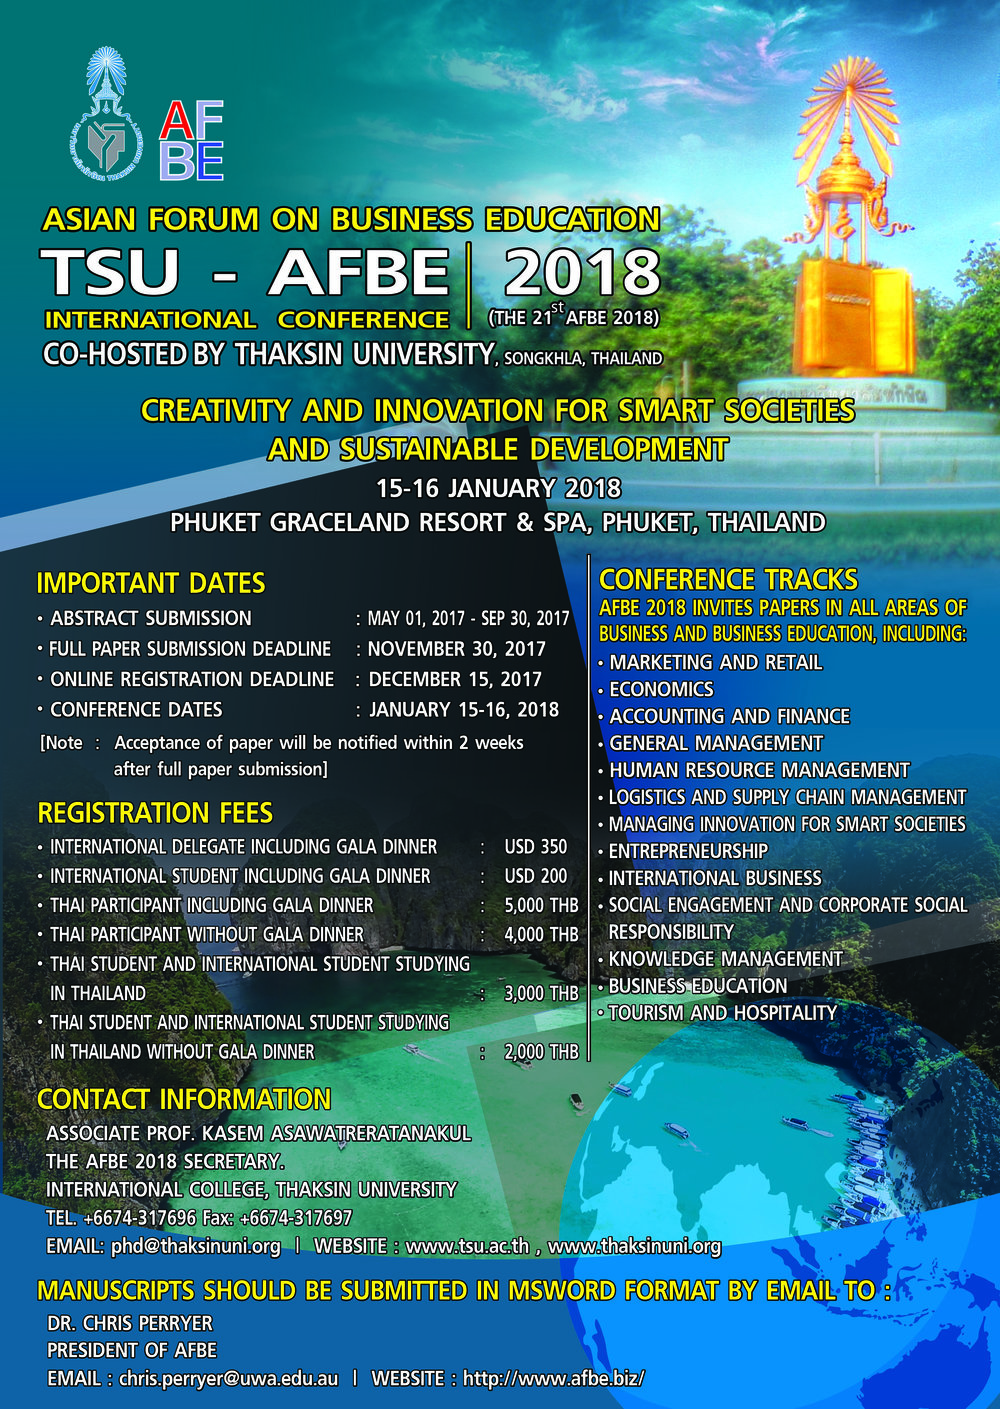 "TSU - AFBE International Conference 2018  - Welcome to the Upcoming International Conference !!  The 21st TSU - AFBE Conference 2018           The International College, Thaksin University will be organizing International Conference on the theme of ""Creativity and Innovation for Smart Societies and Sustainable Development"" during 15th – 16th January, 2018 at Phuket Graceland Resort and Spa, Phuket, Thailand Register for the Conference Click Here!"